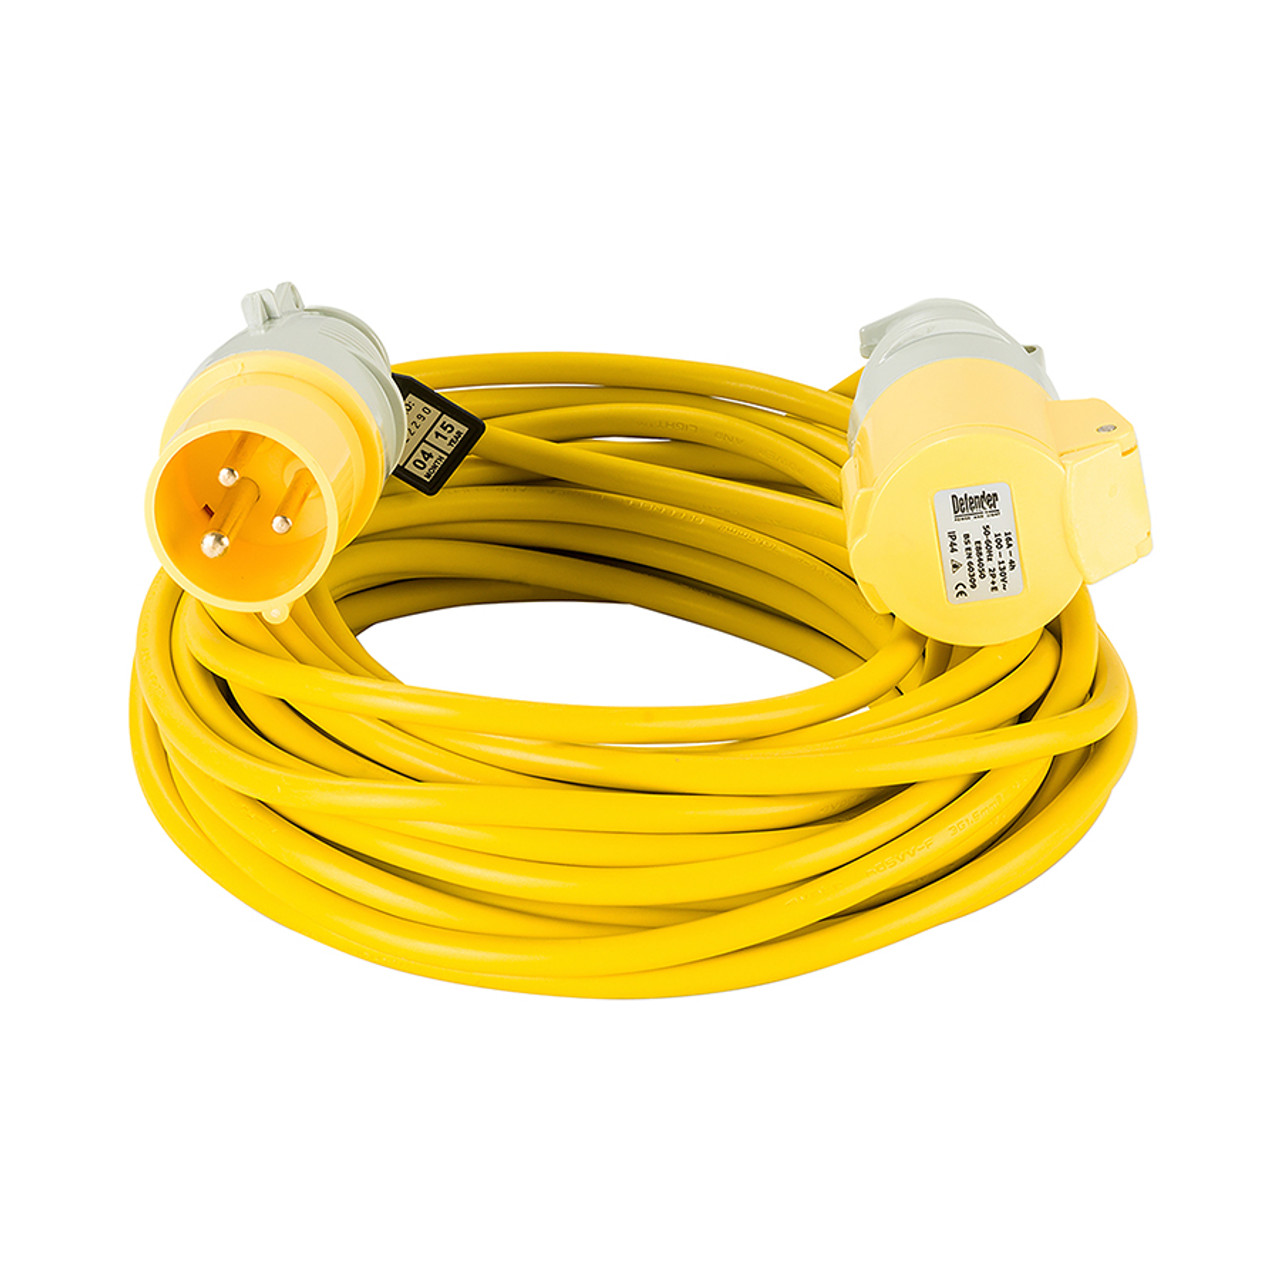 Defender 14M Extension Lead - 16A 2 5mm Cable - Yellow 110V